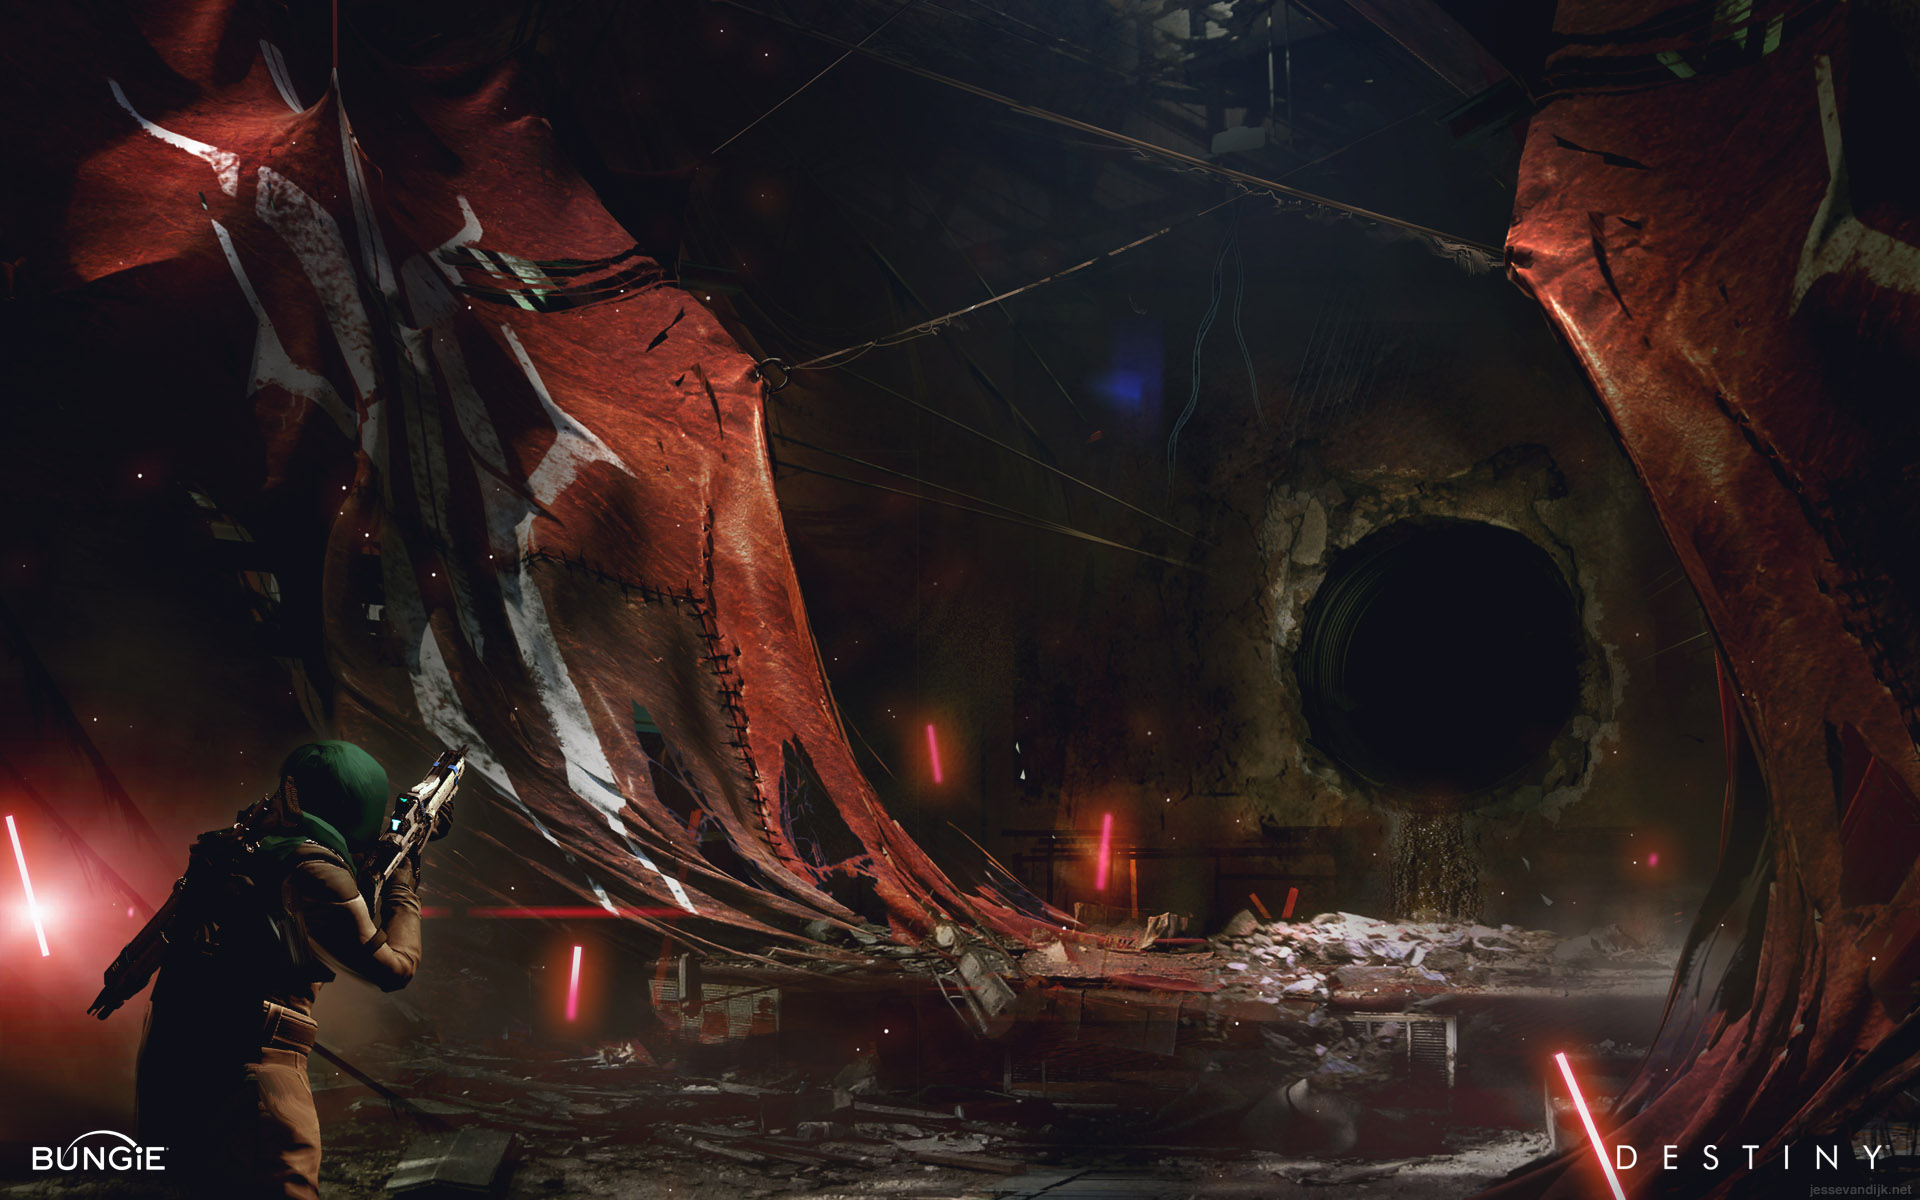 Destiny Environment Concept Art